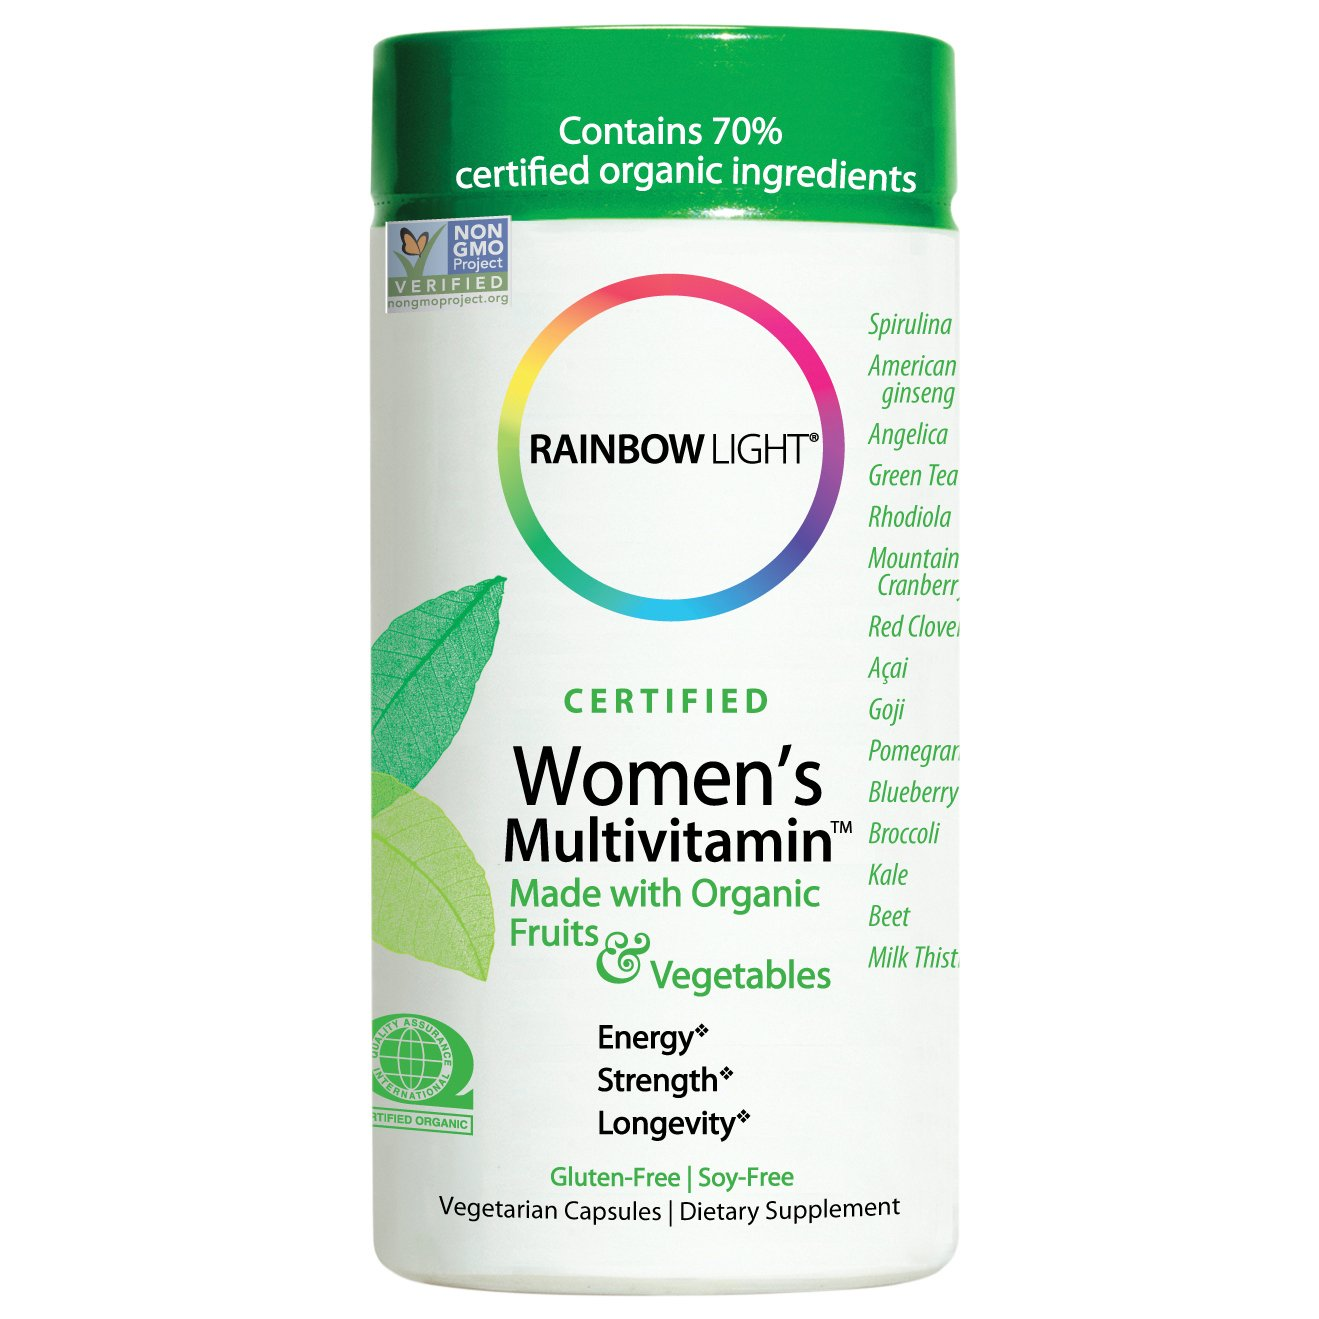 Rainbow Light Women's Multivitamin, Organic Fruits & Vegetables, Gluten-Free, Soy-Free, 120 Vegetarian Capsules